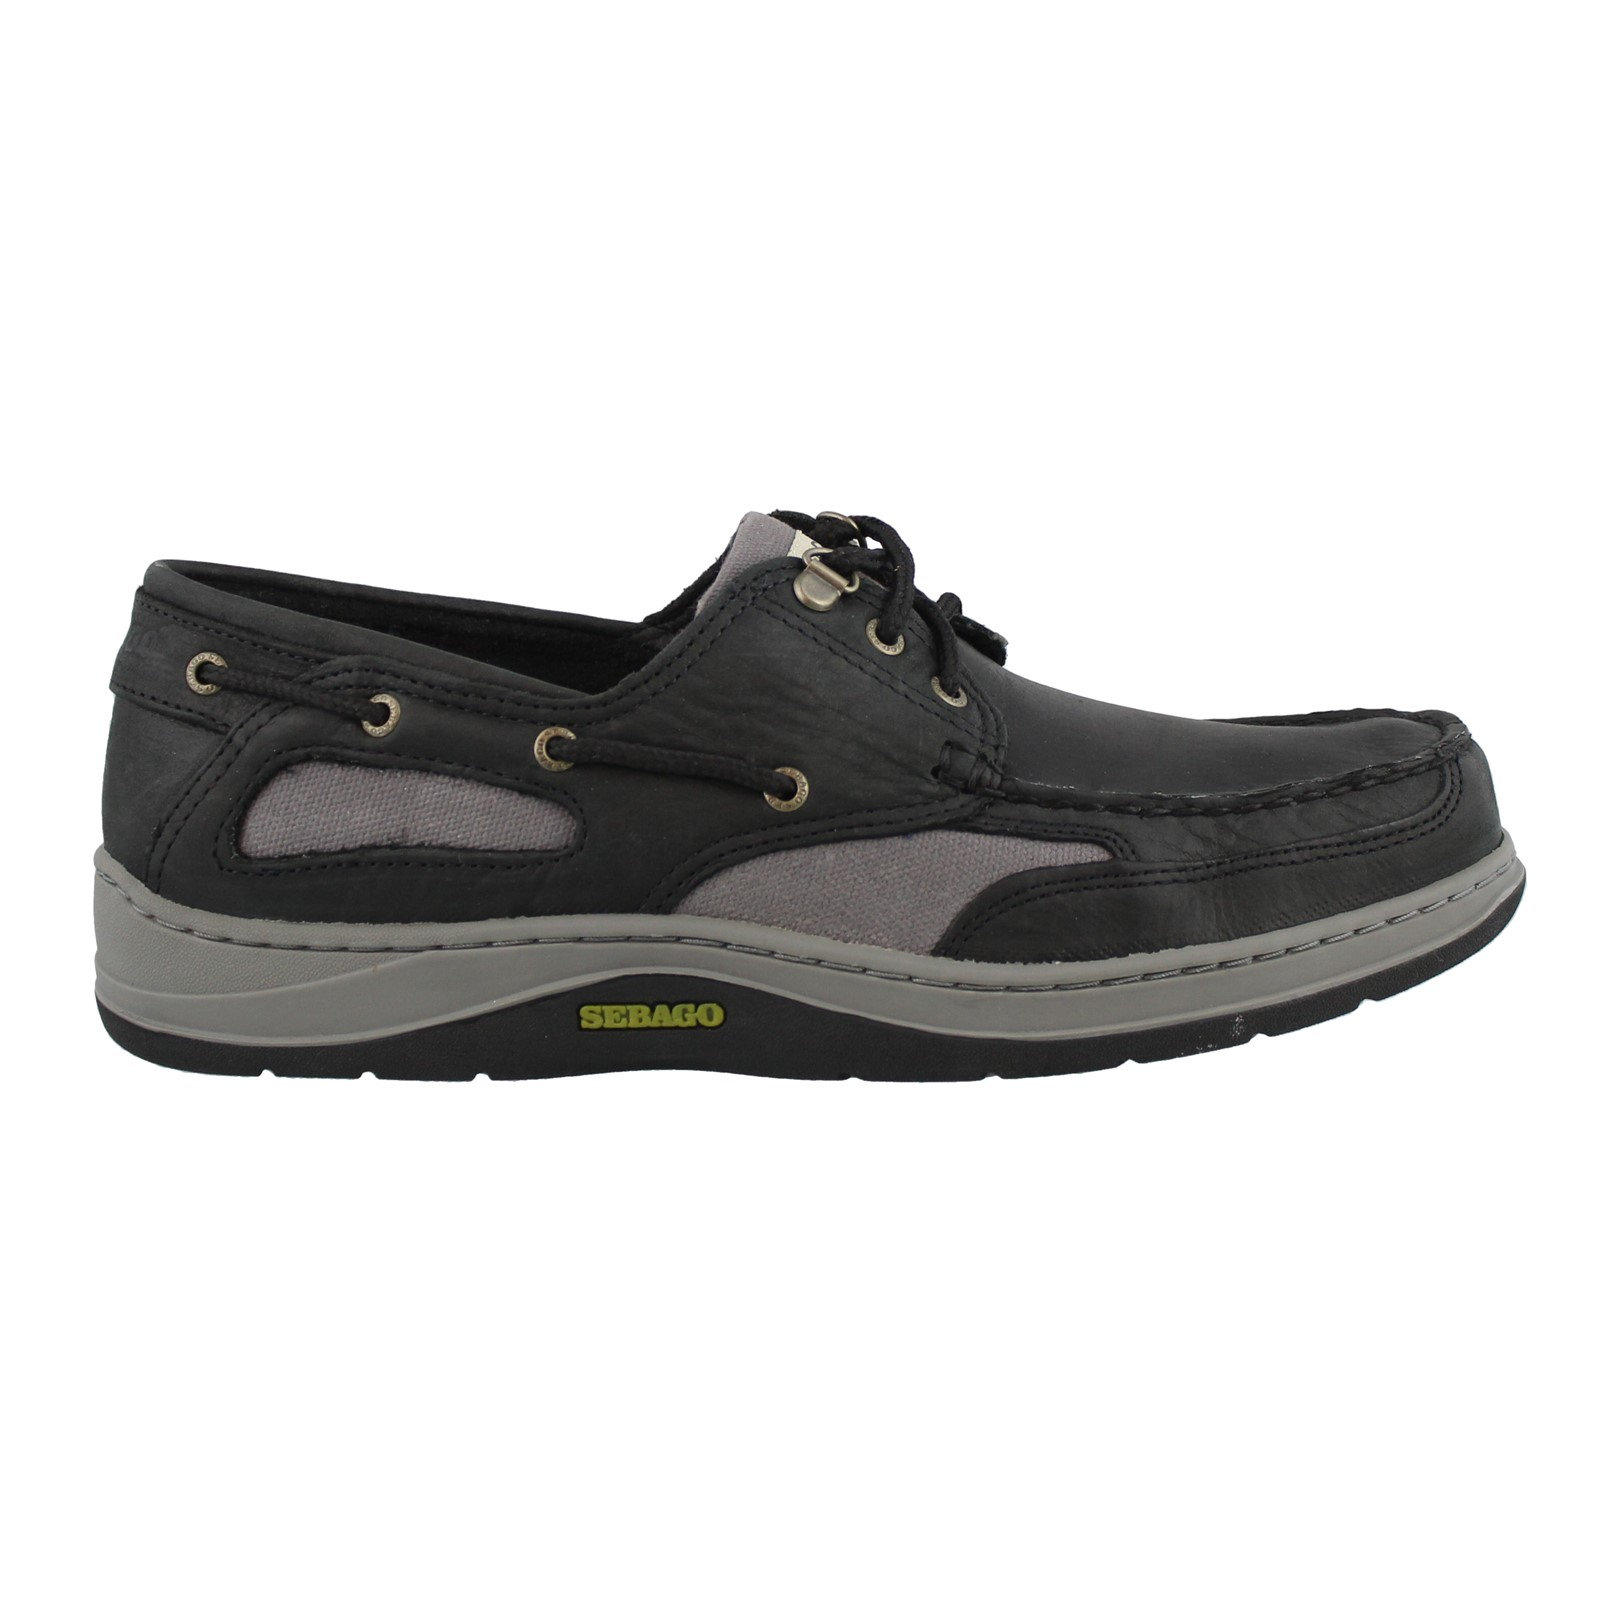 Men's Sebago, Clovehitch Lace up Boat Shoes